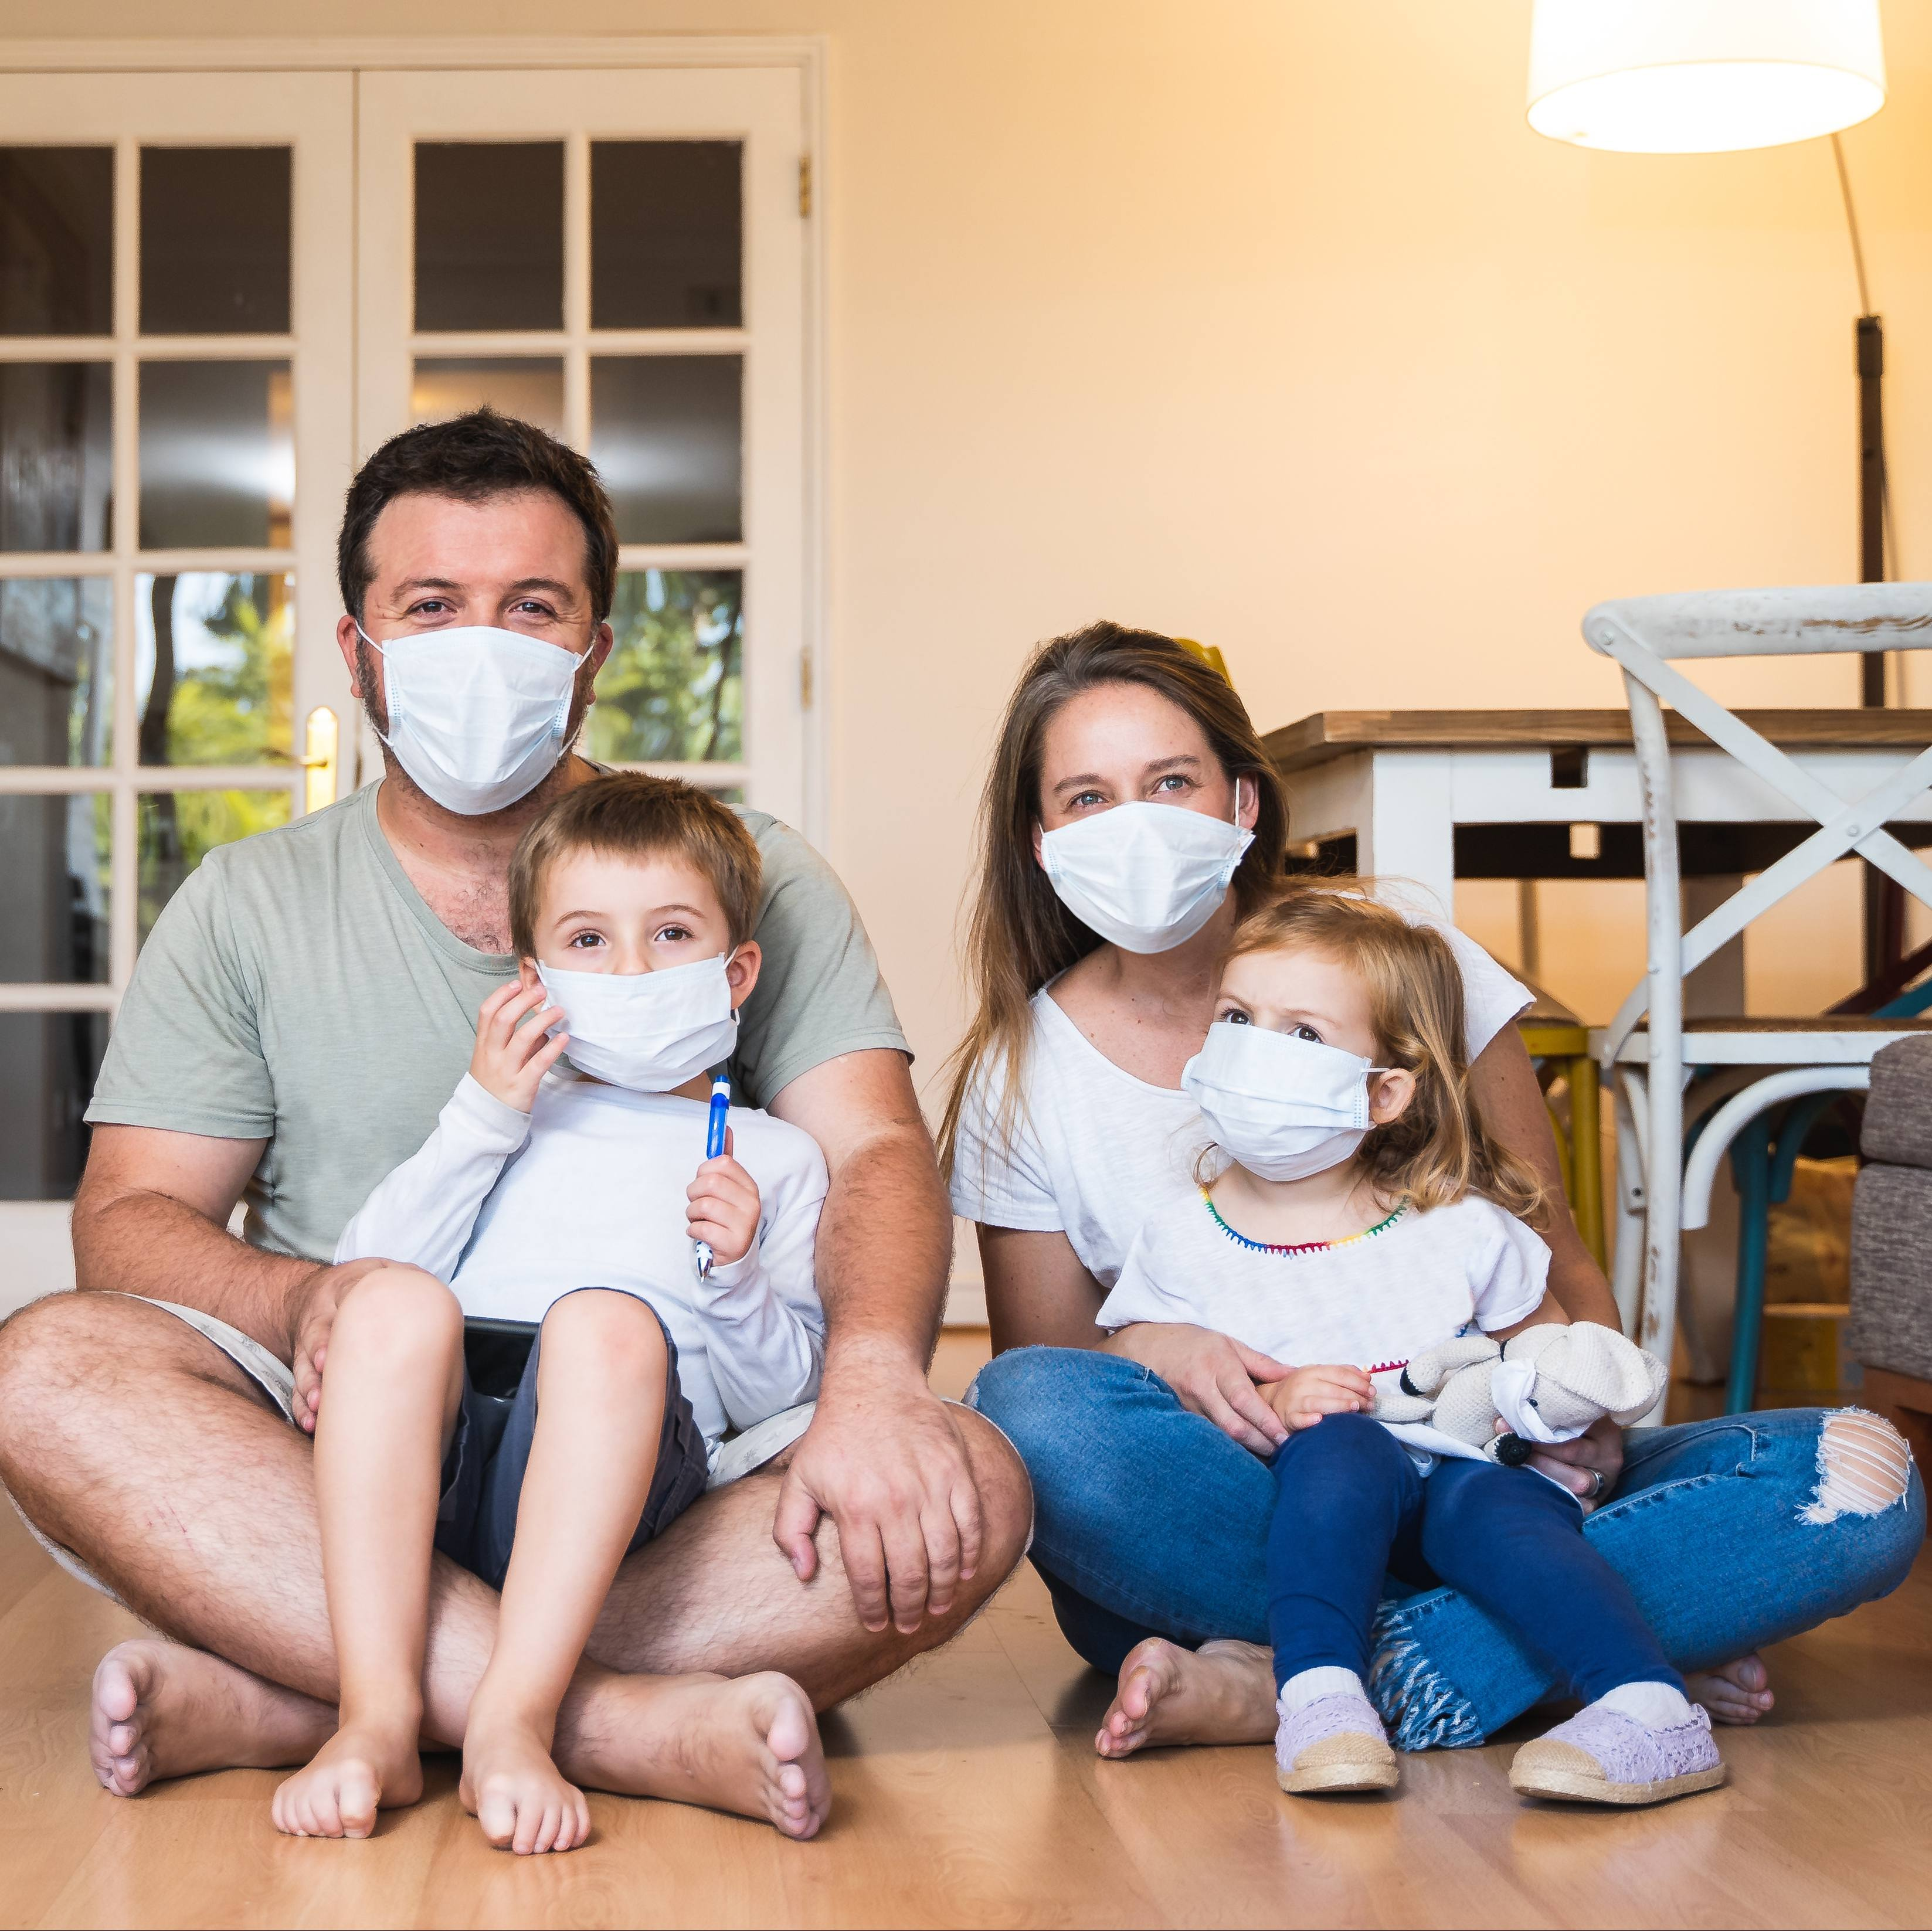 a white man and woman with two white children sitting on their laps on the floor, smiling and wearing face masks